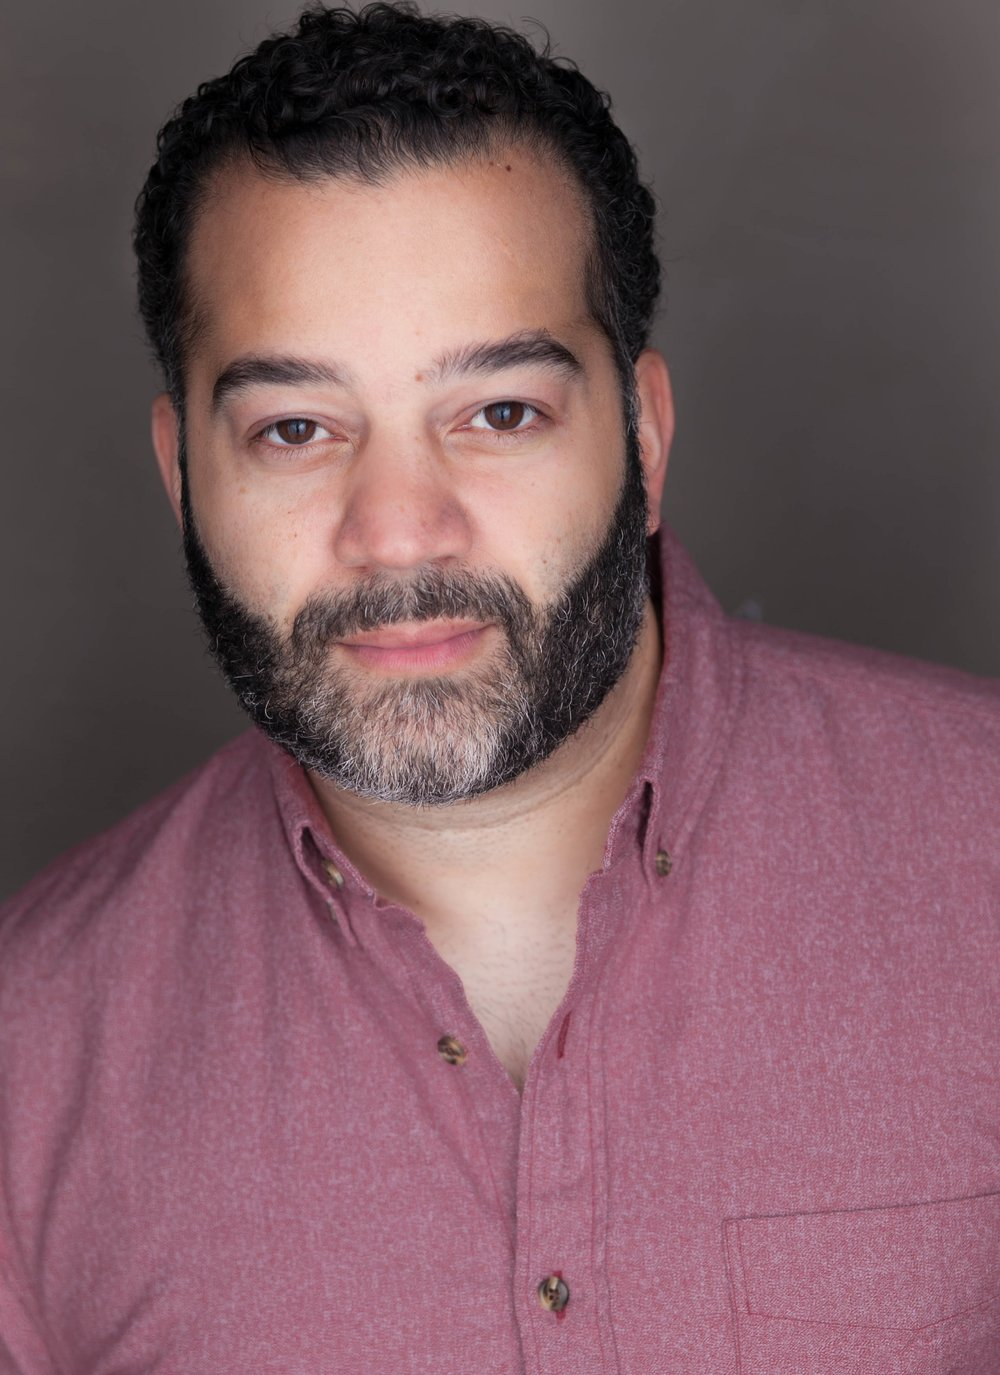 DANNY GARCIA - Don't miss client Danny Garcia as 'Raul' on tonight's episode of CHICAGO PD. Find out what happens at 10 PM EST only on NBC.